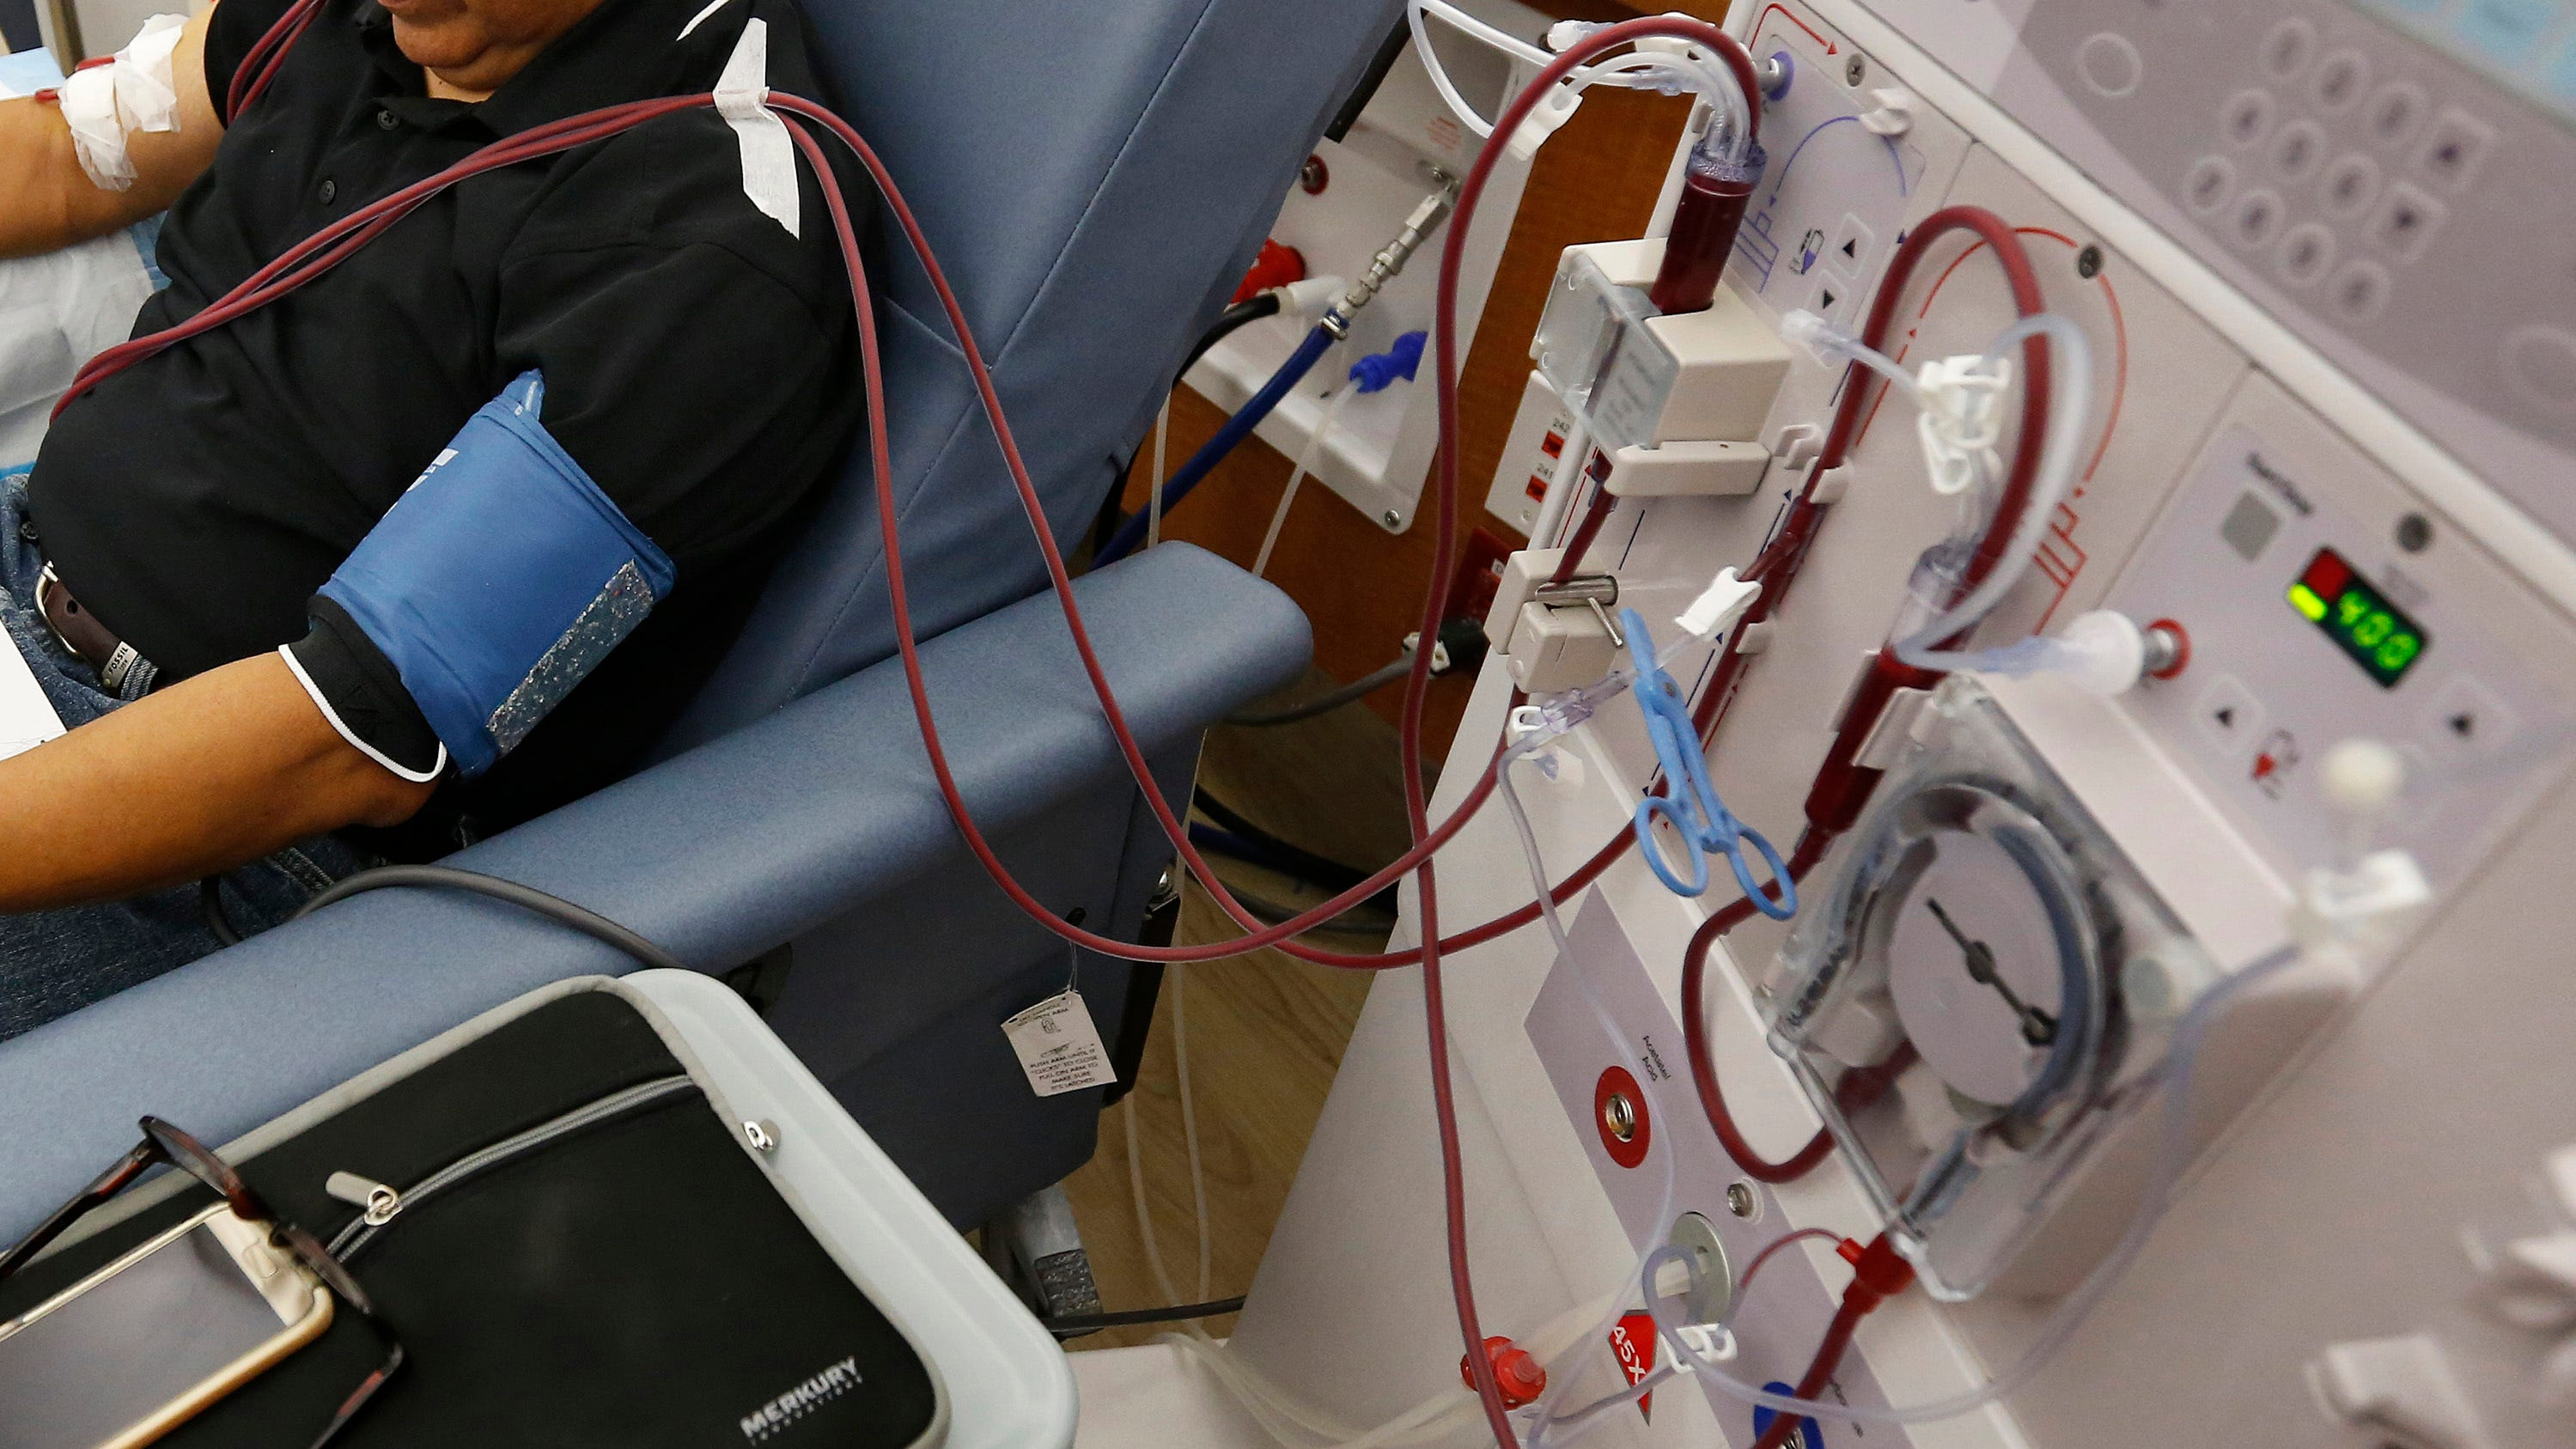 Prop 23 a strongarm measure ostensibly about better dialysis care. Don't fall for it.